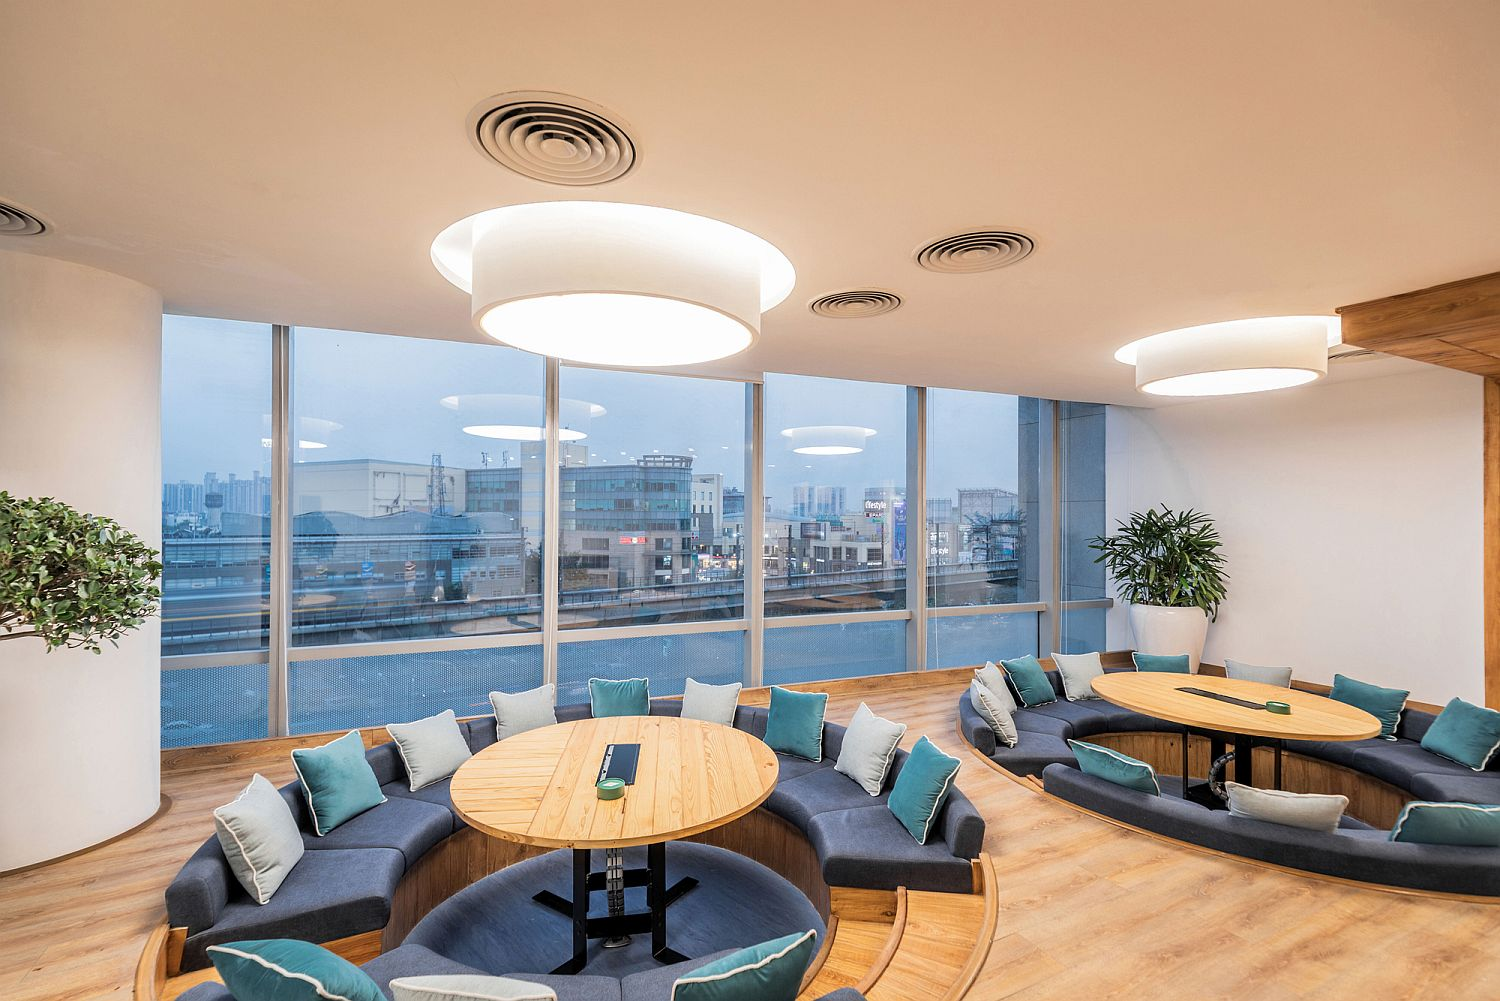 Sunken office meeting areas offer an innovative space to share ideas